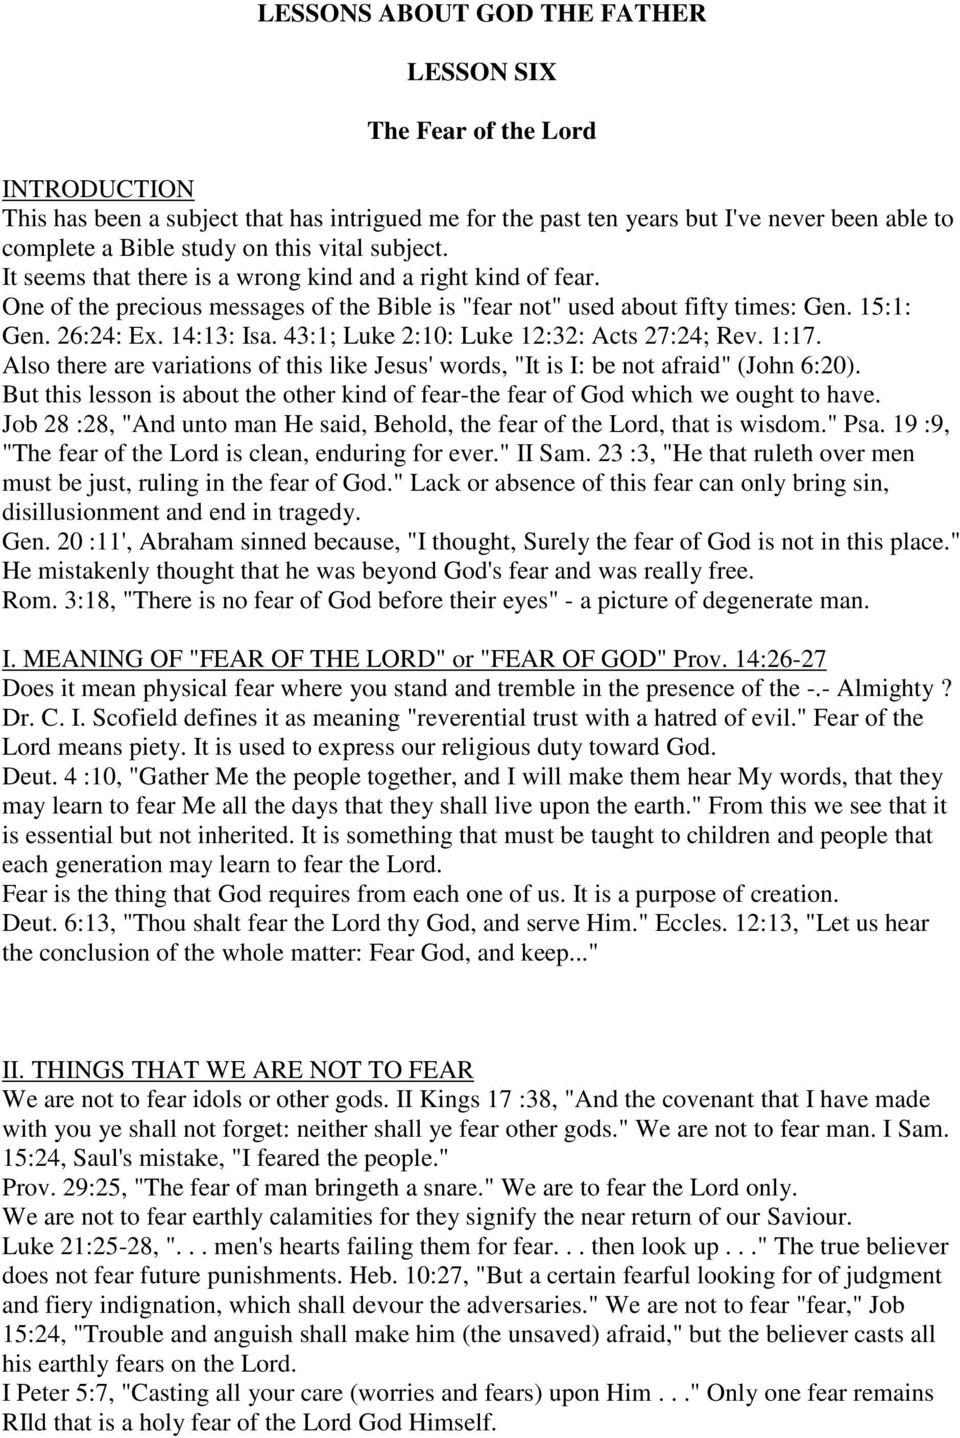 100 BIBLE LESSONS By Alban Douglas LESSON ONE  The Existence